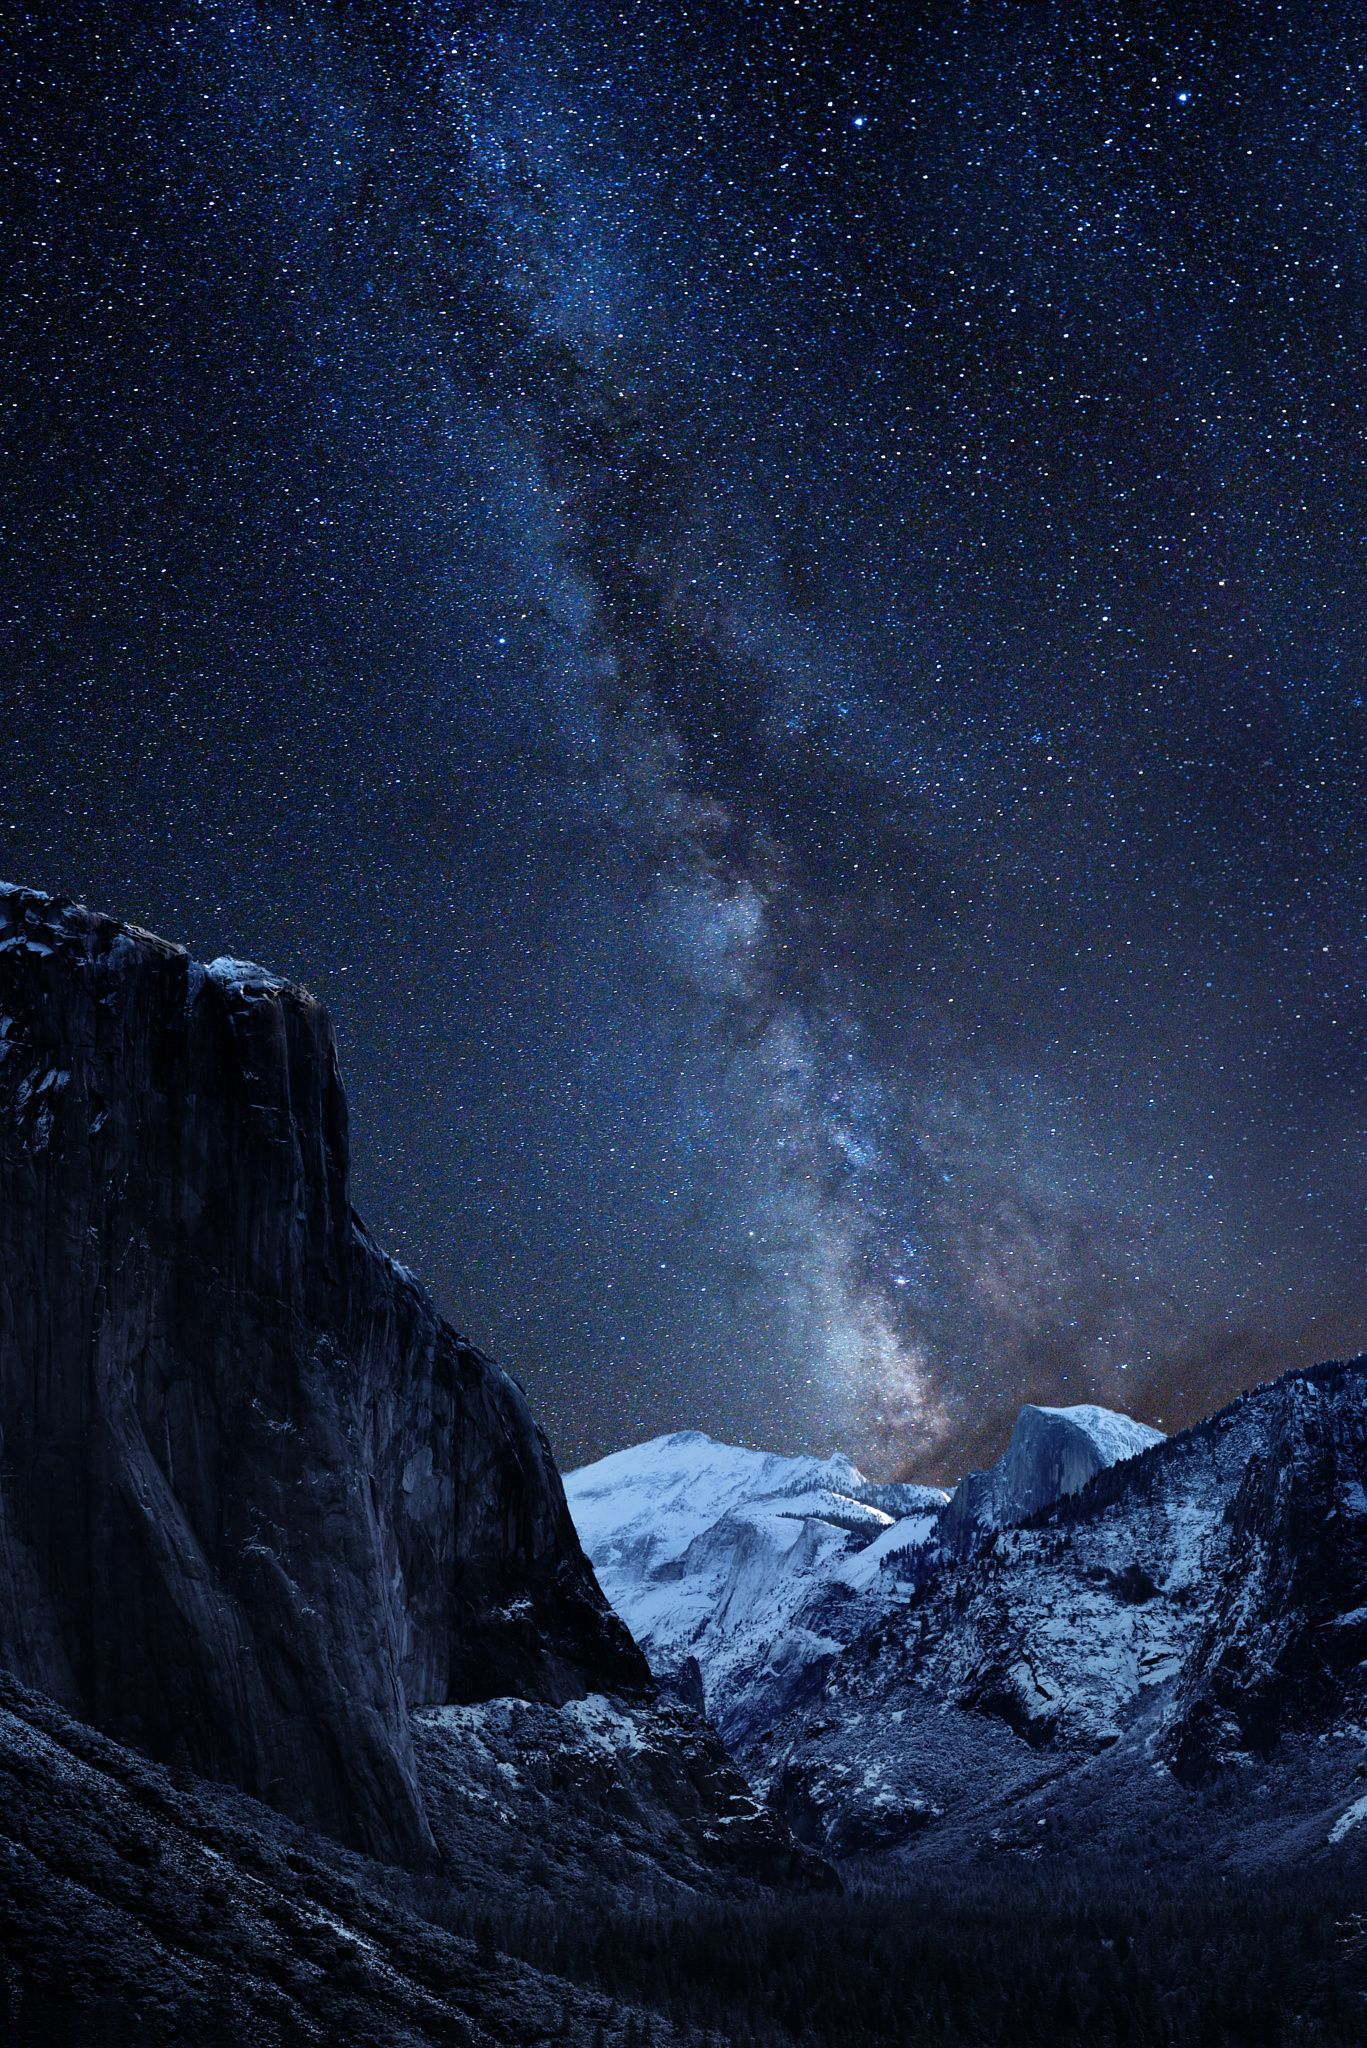 Half Dome Yosemite Valley California And Milky Way Riddhisinghal6 Beautiful Night Sky Landscape Photography Nature